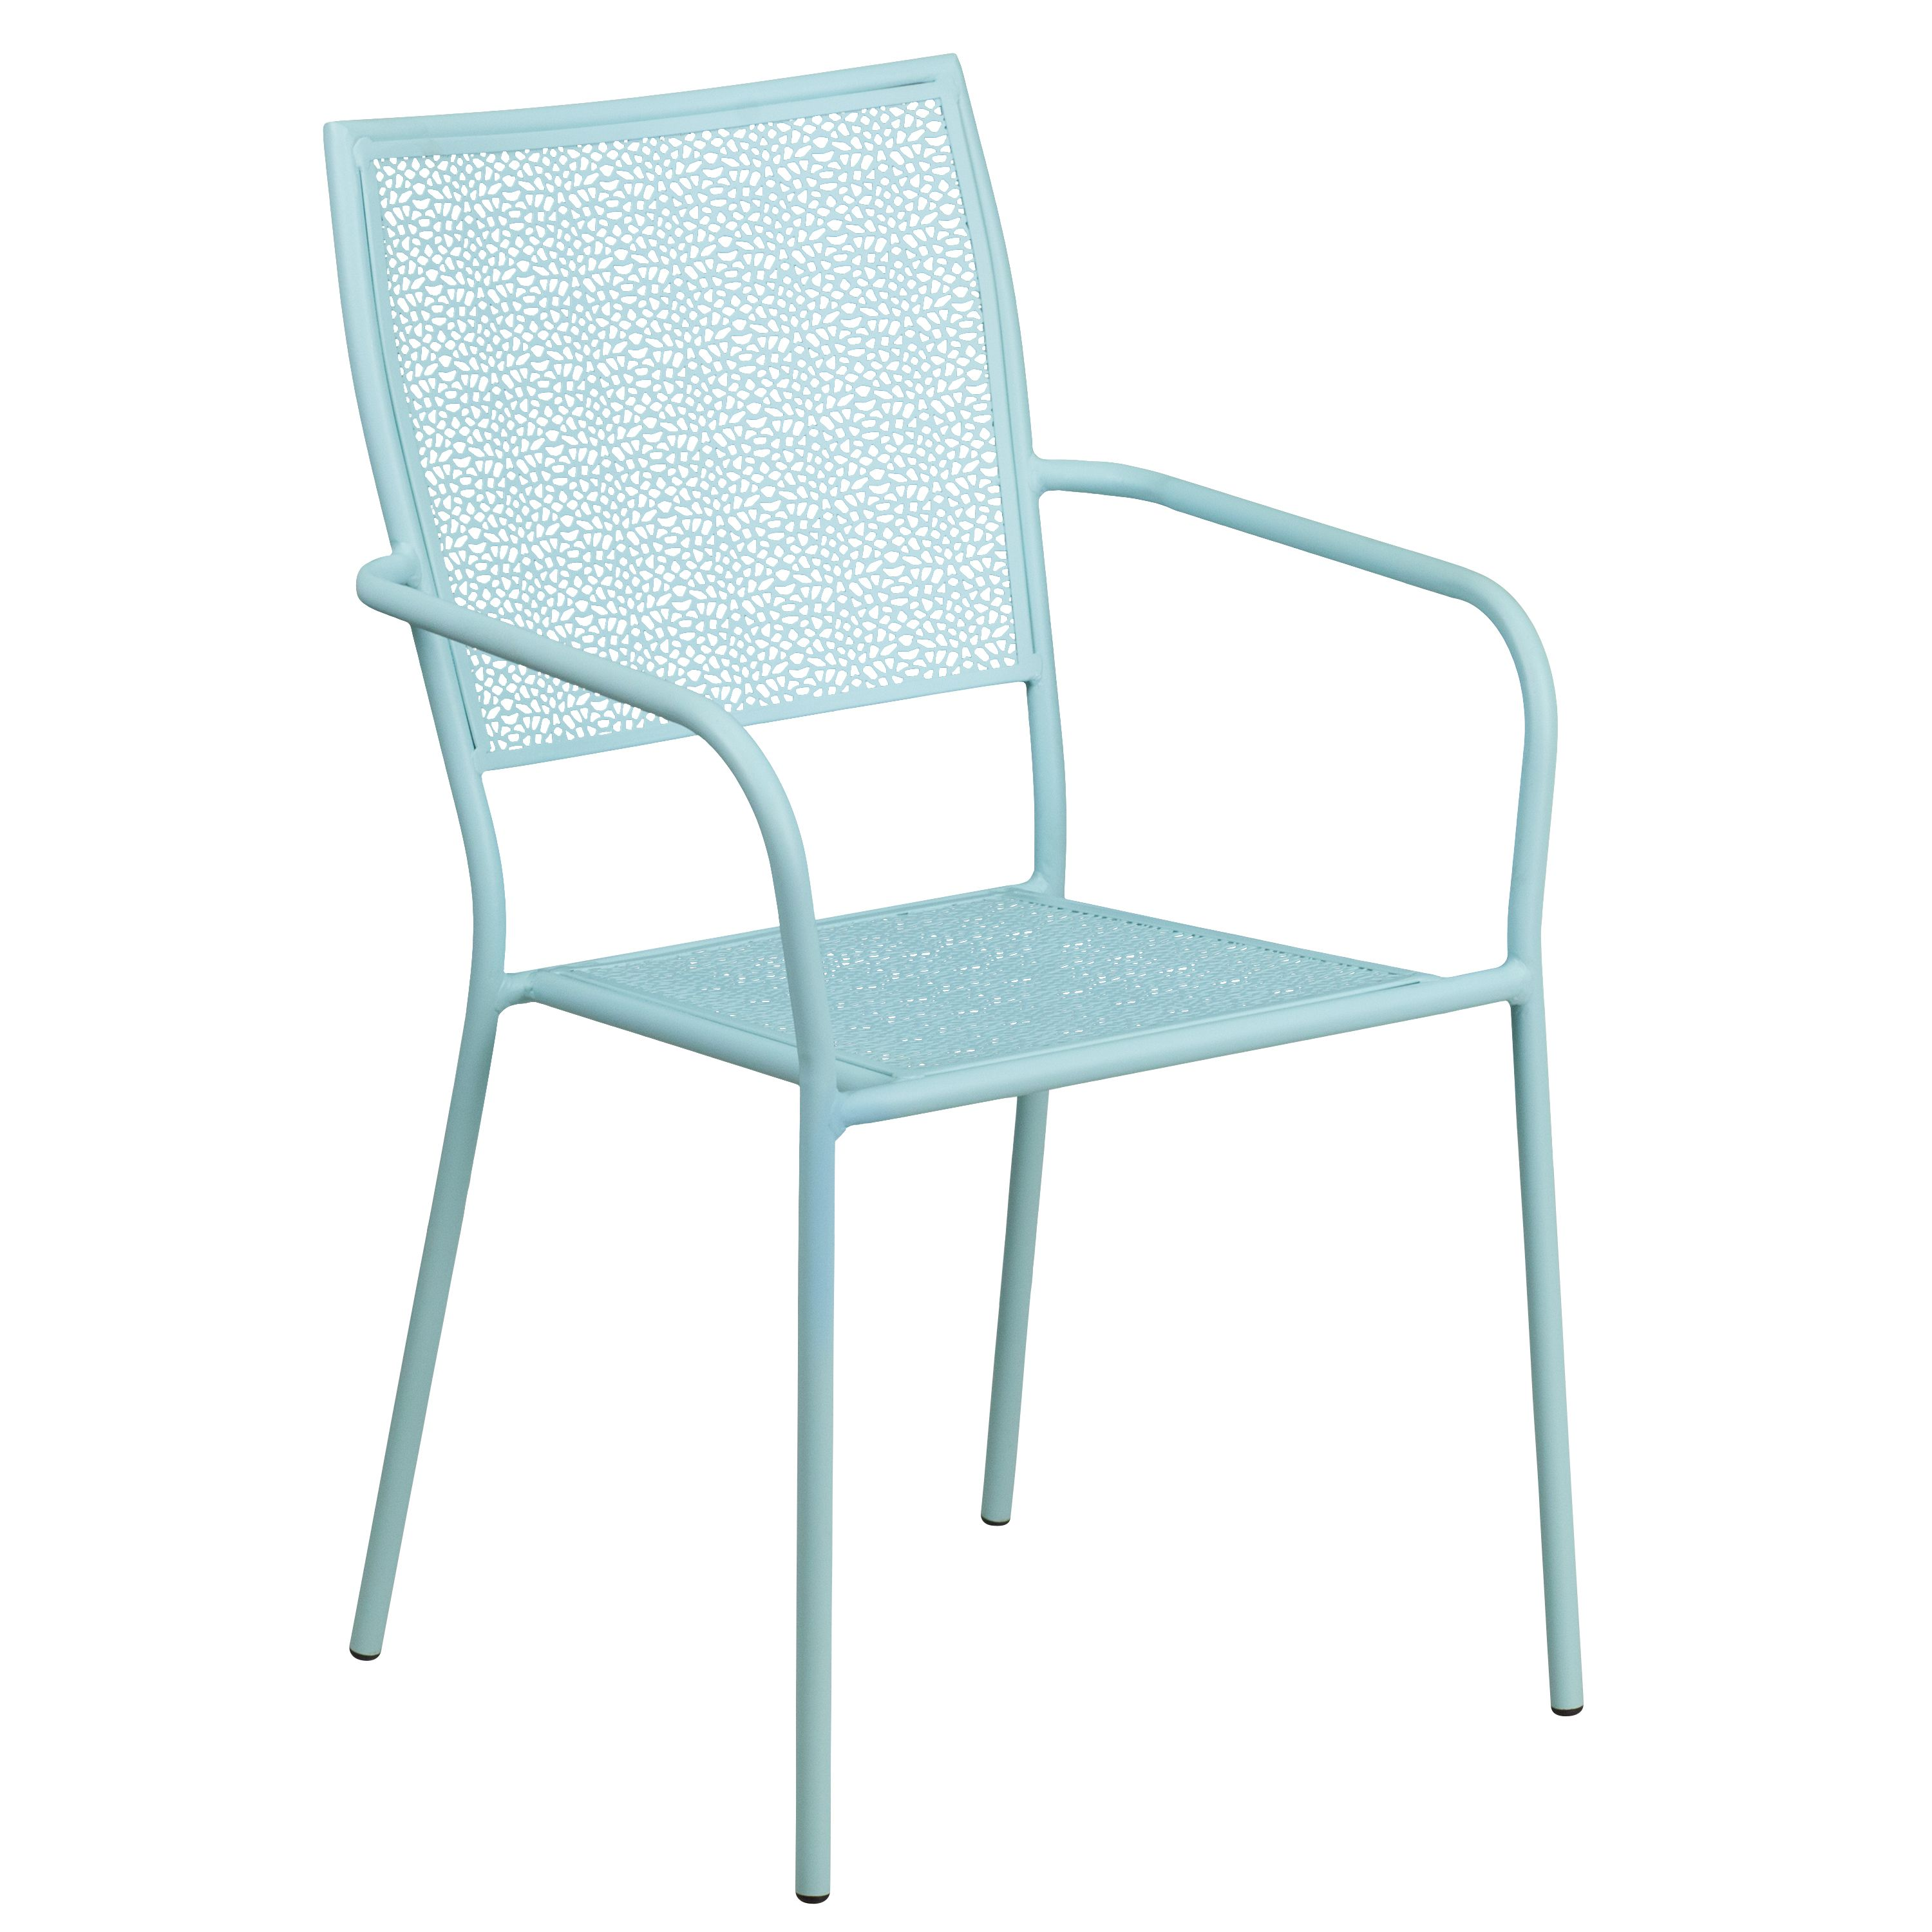 Stackable outdoor chairs lightweight peppermill interiors - Stackable Outdoor Chairs Lightweight Peppermill Interiors 11